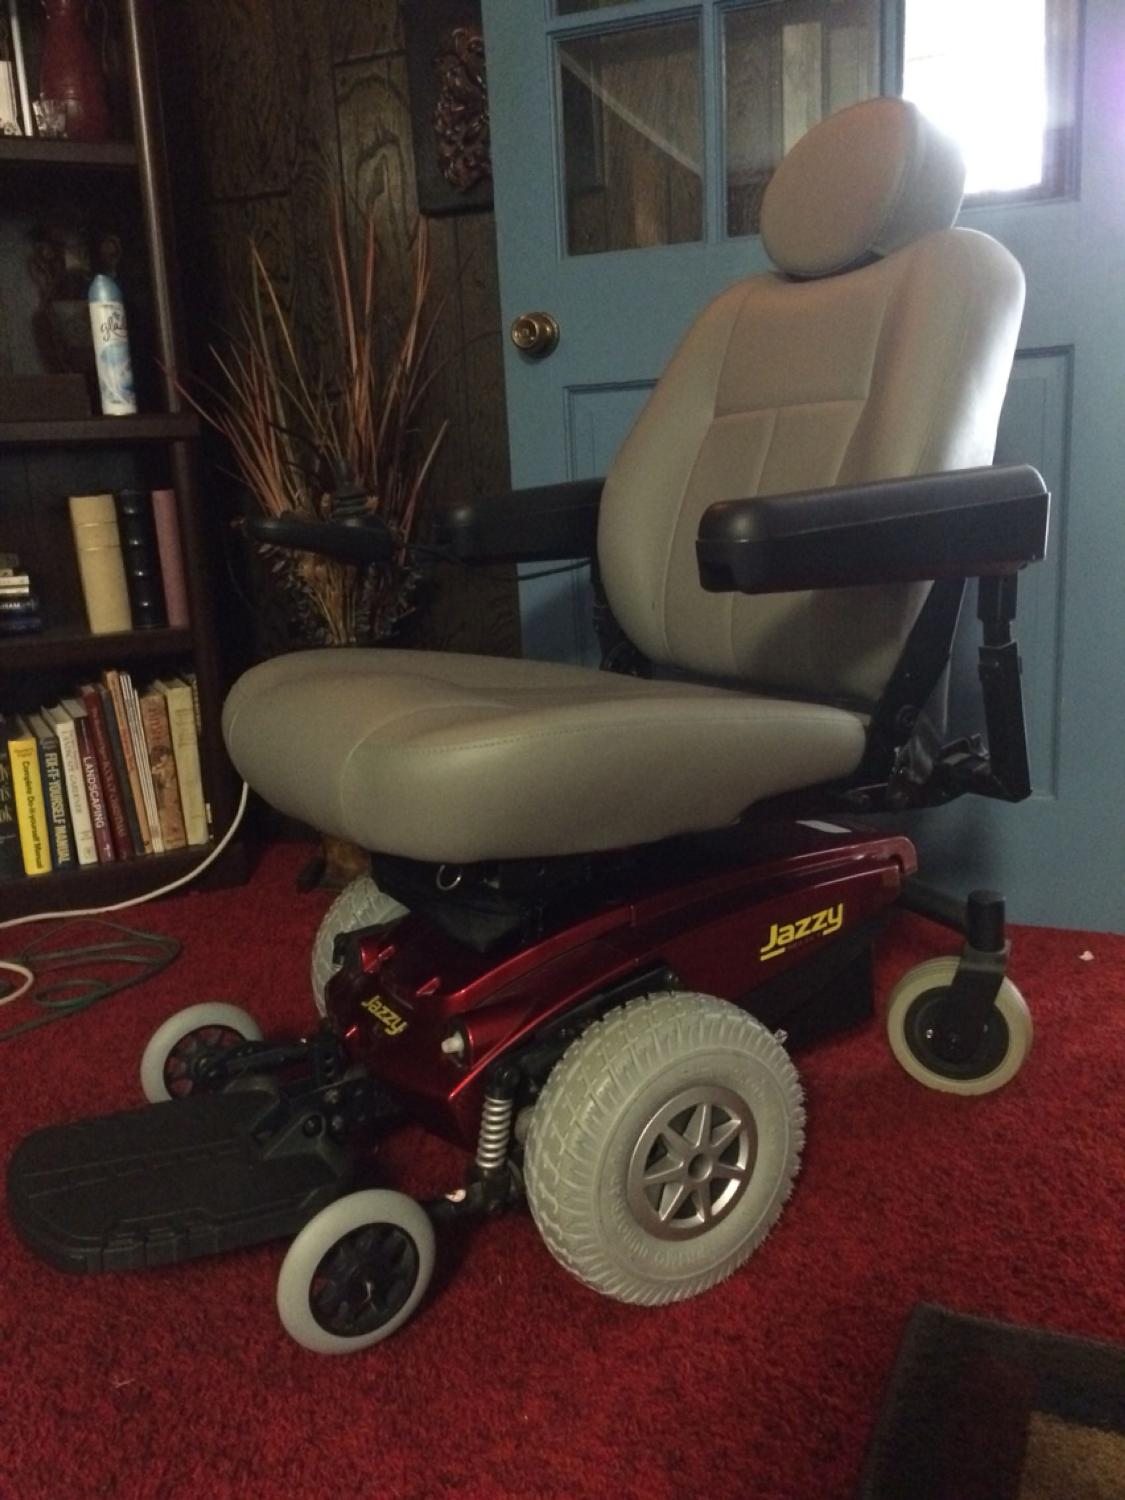 best jazzy select power chair for sale in hattiesburg mississippi for 2019. Black Bedroom Furniture Sets. Home Design Ideas